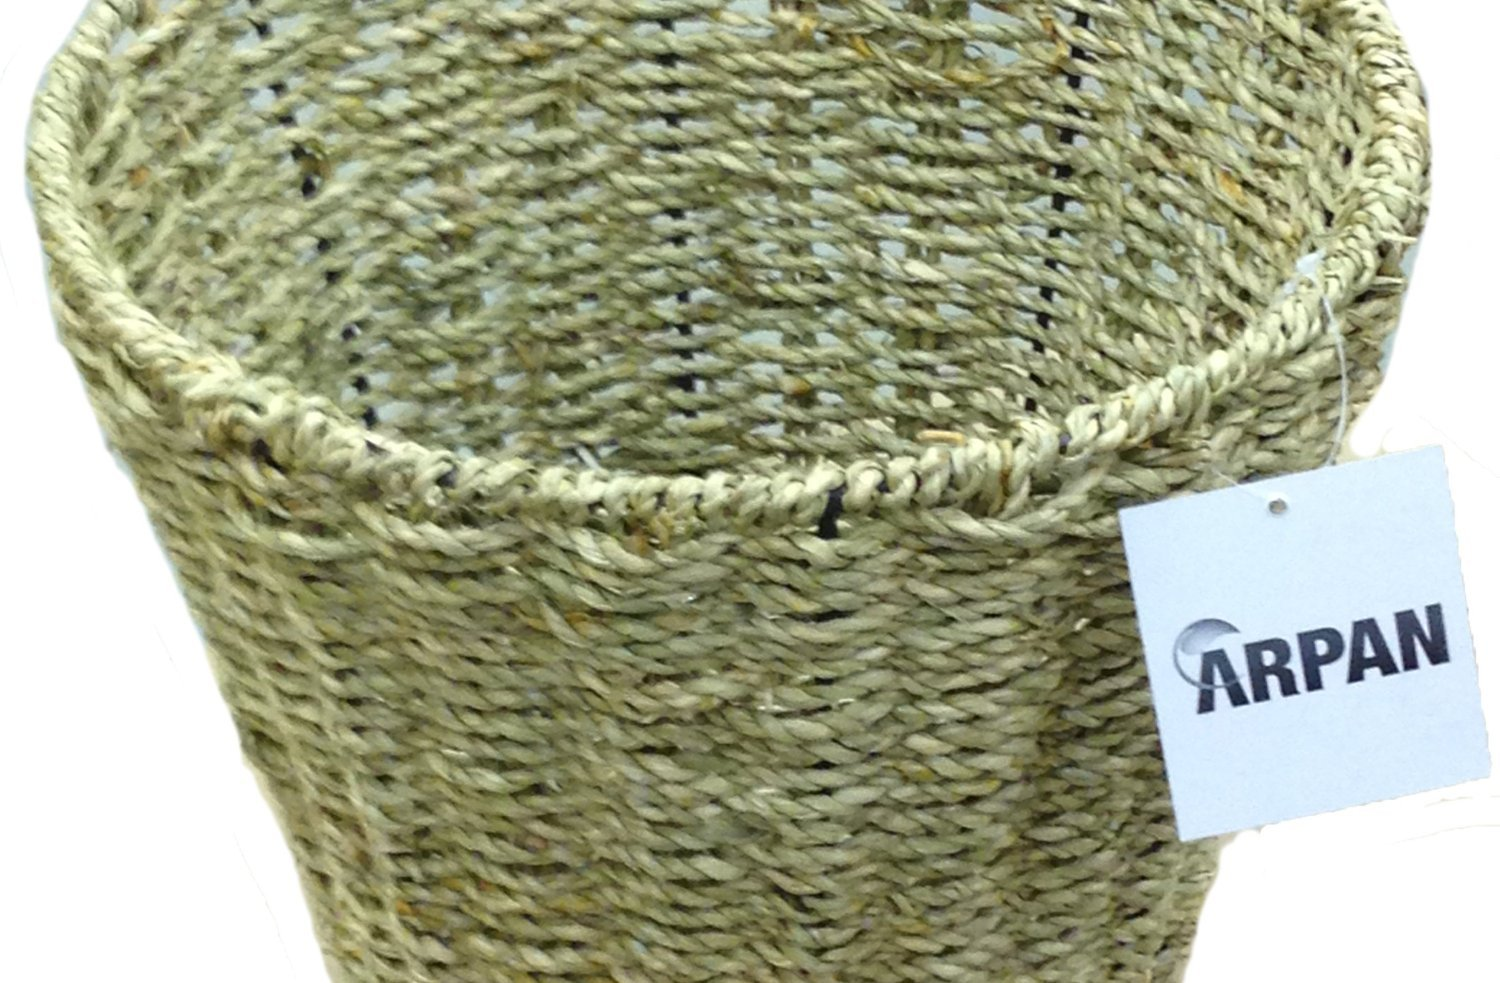 Arpan Set of 2 Seagrass Round Waste Paper Bin/Basket/Storage - Ideal For Home, Office, Bedrooms